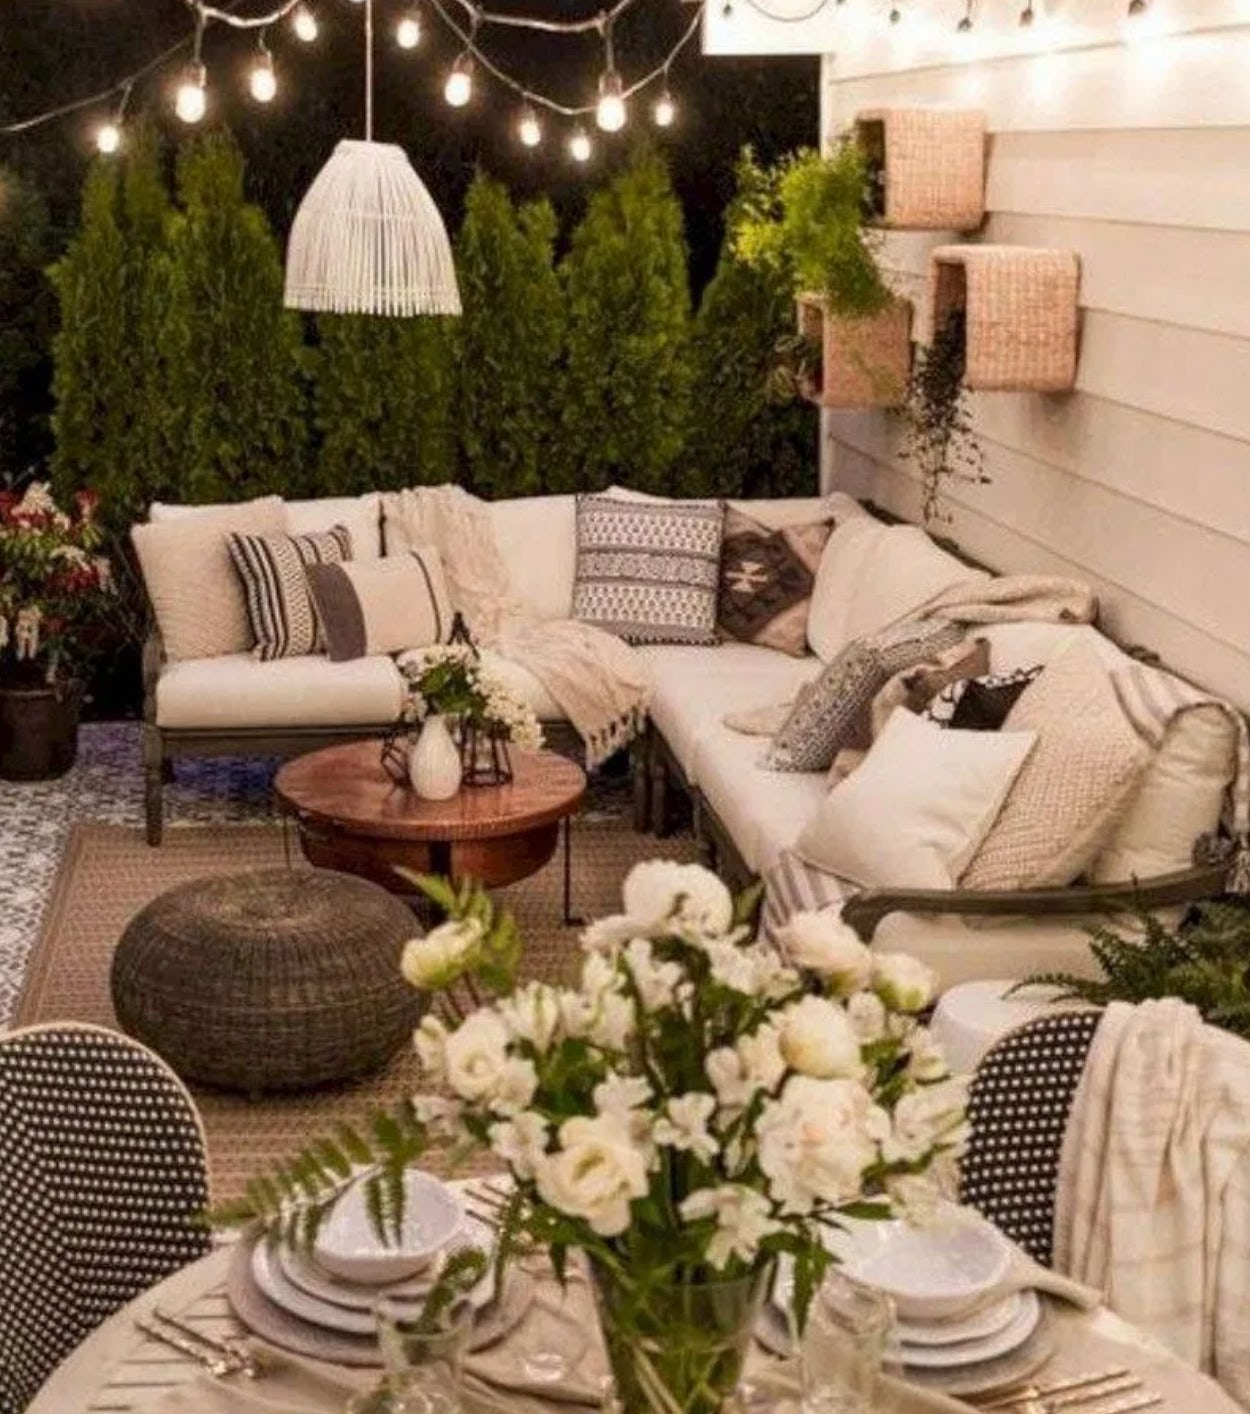 Comfortable porch